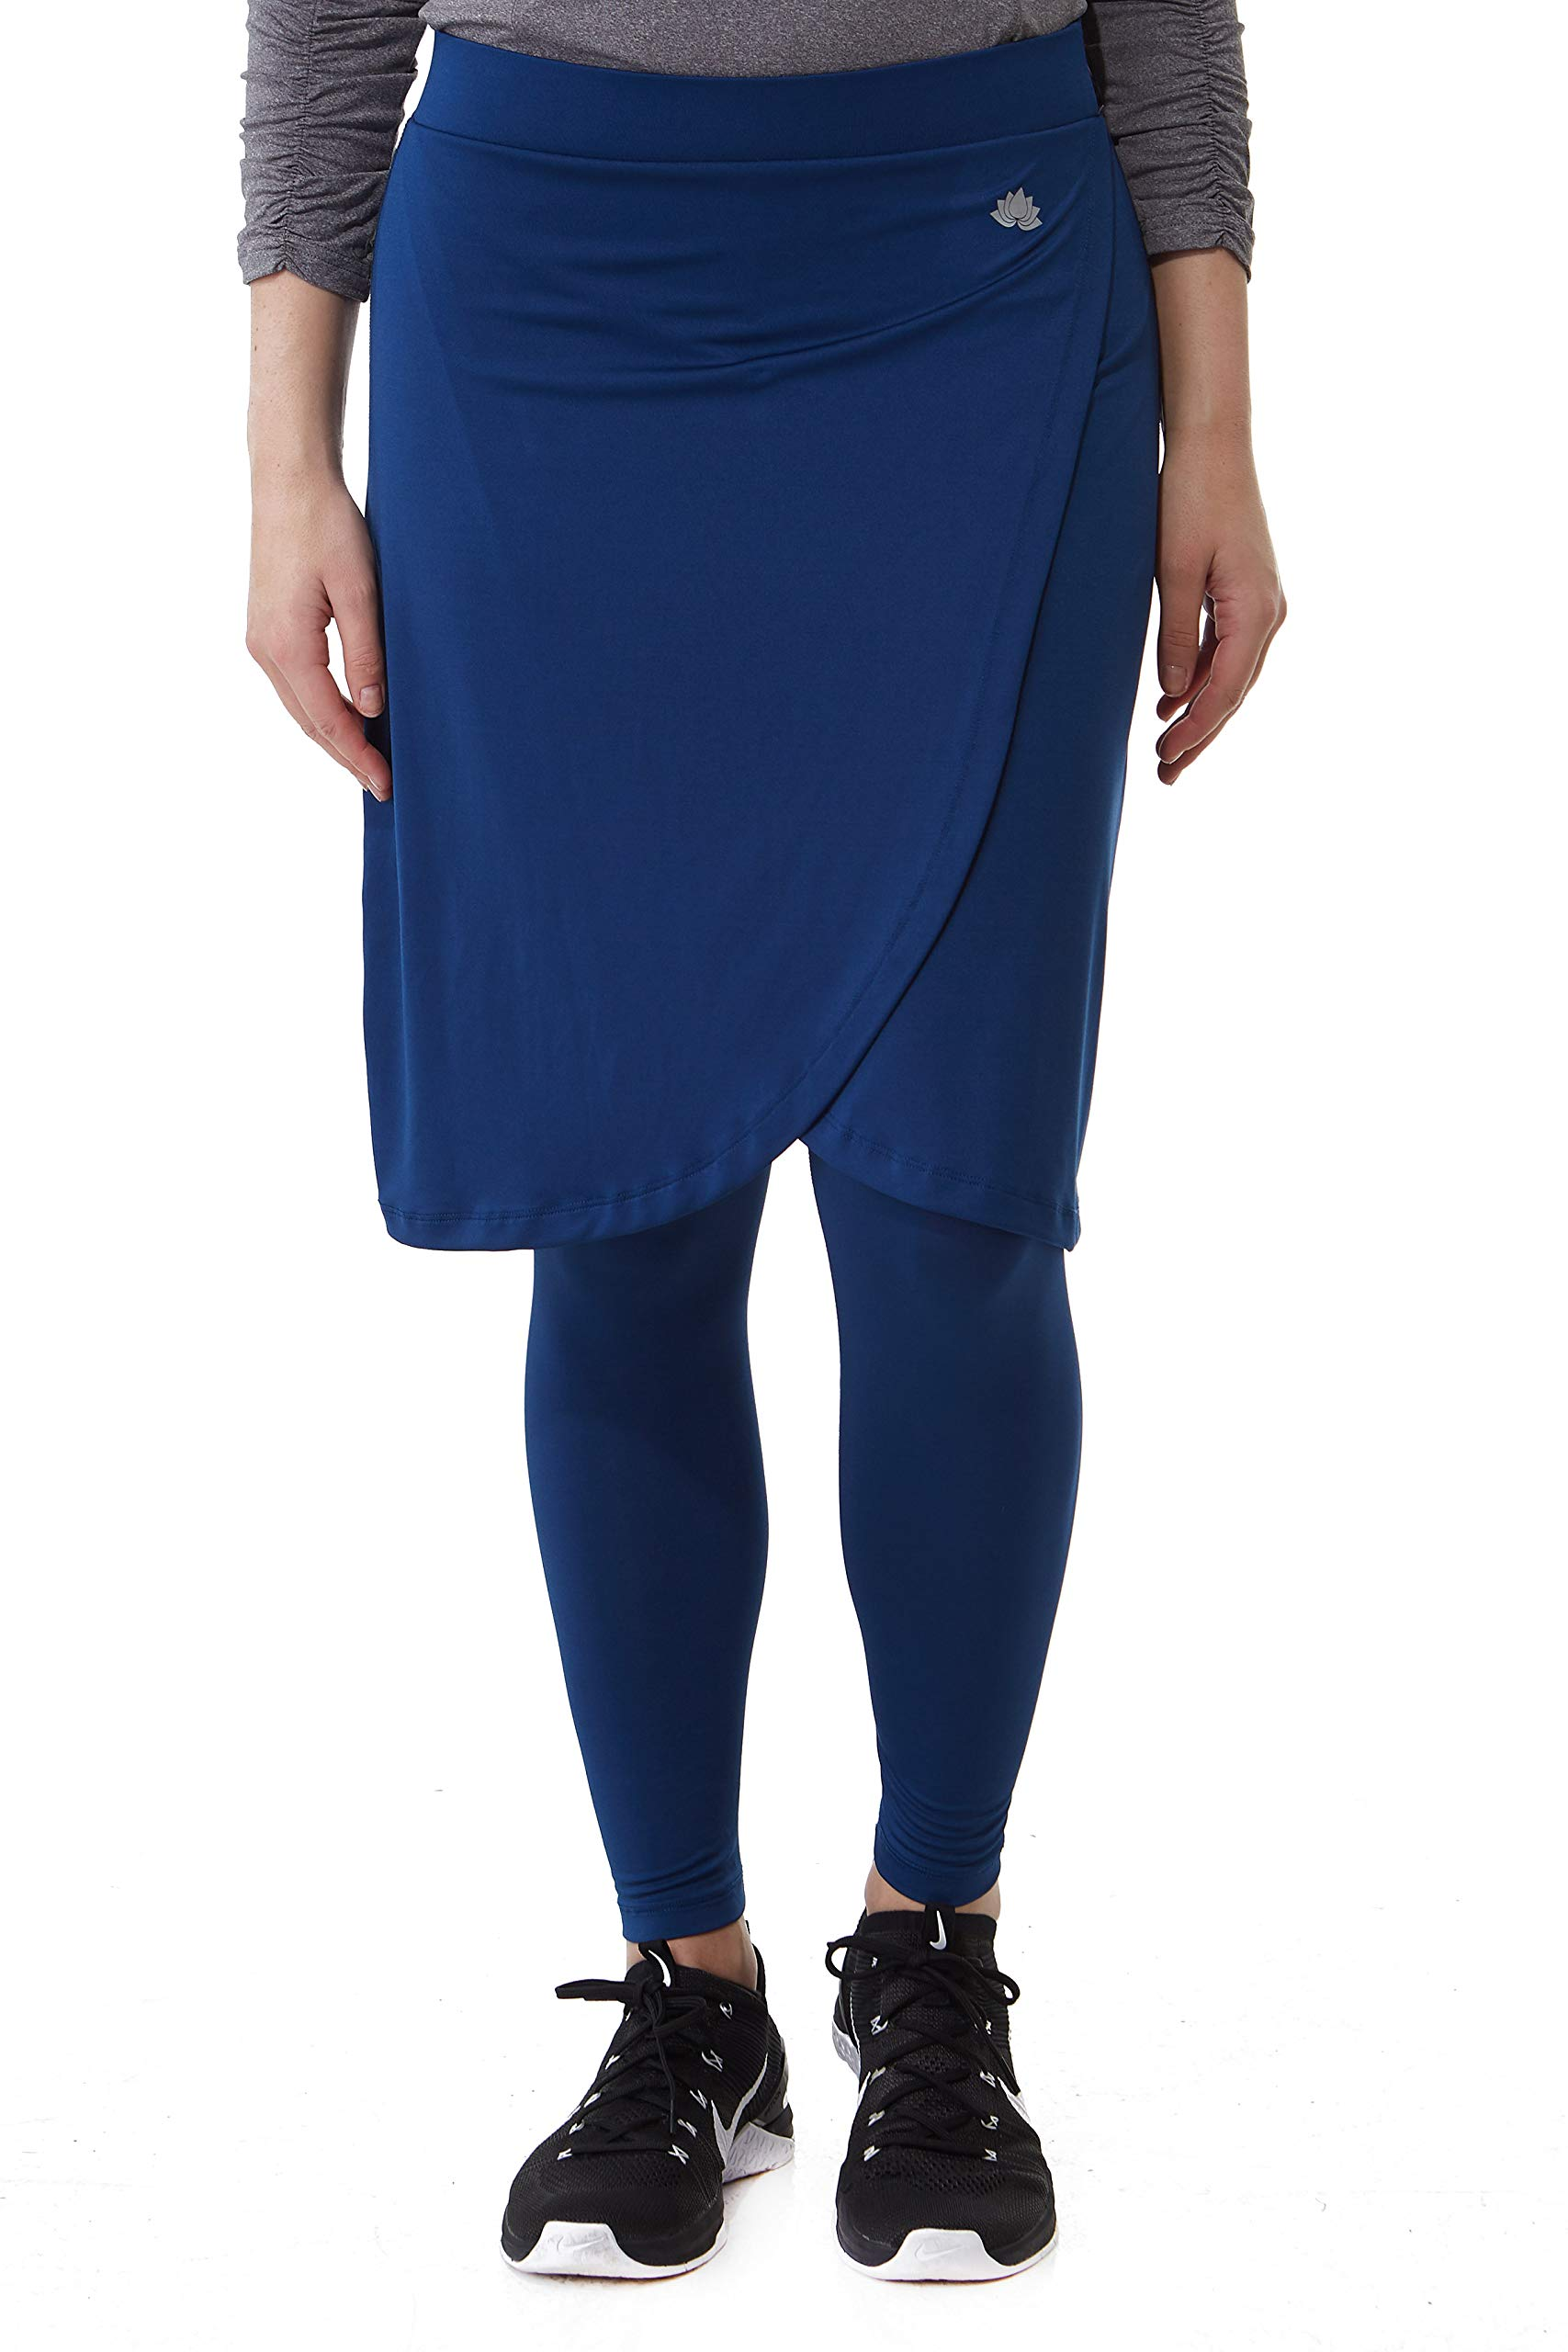 Snoga Athletics Faux Wrap Skirt with Ankle Leggings - Navy Blue, 1X by Snoga Athletics